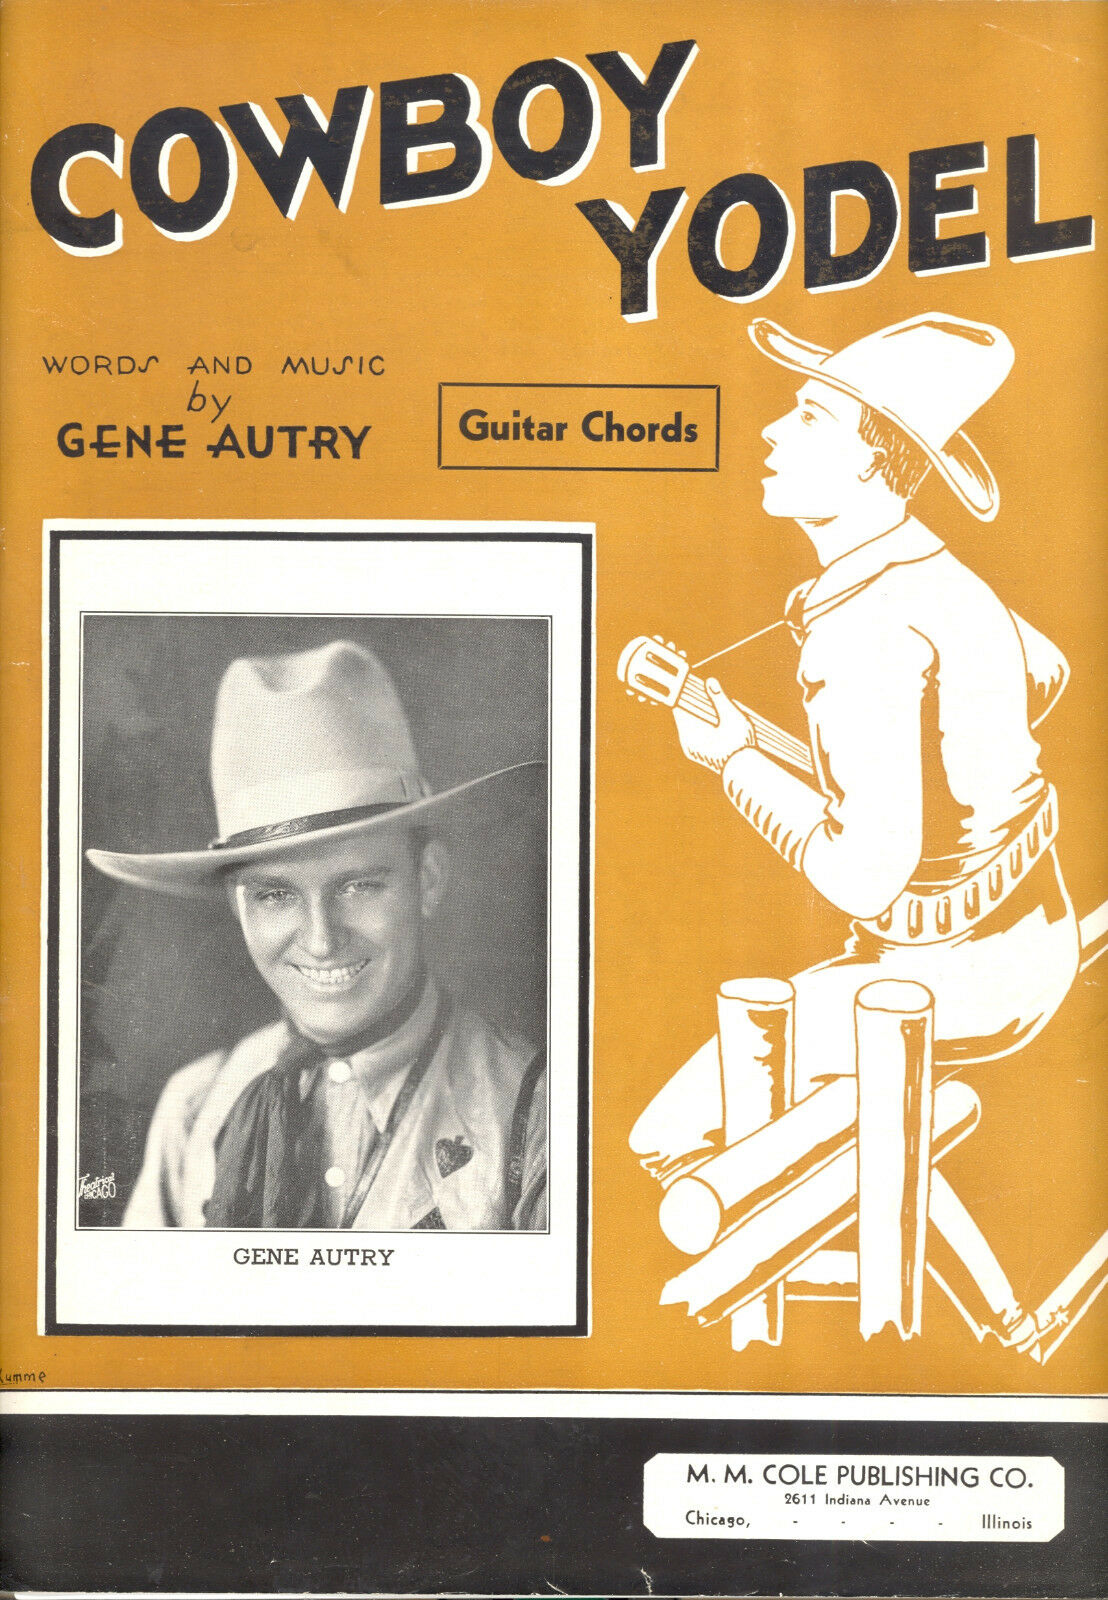 GENE AUTRY Sheet Music  Cowboy Yodel  1932 With Guitar Chords